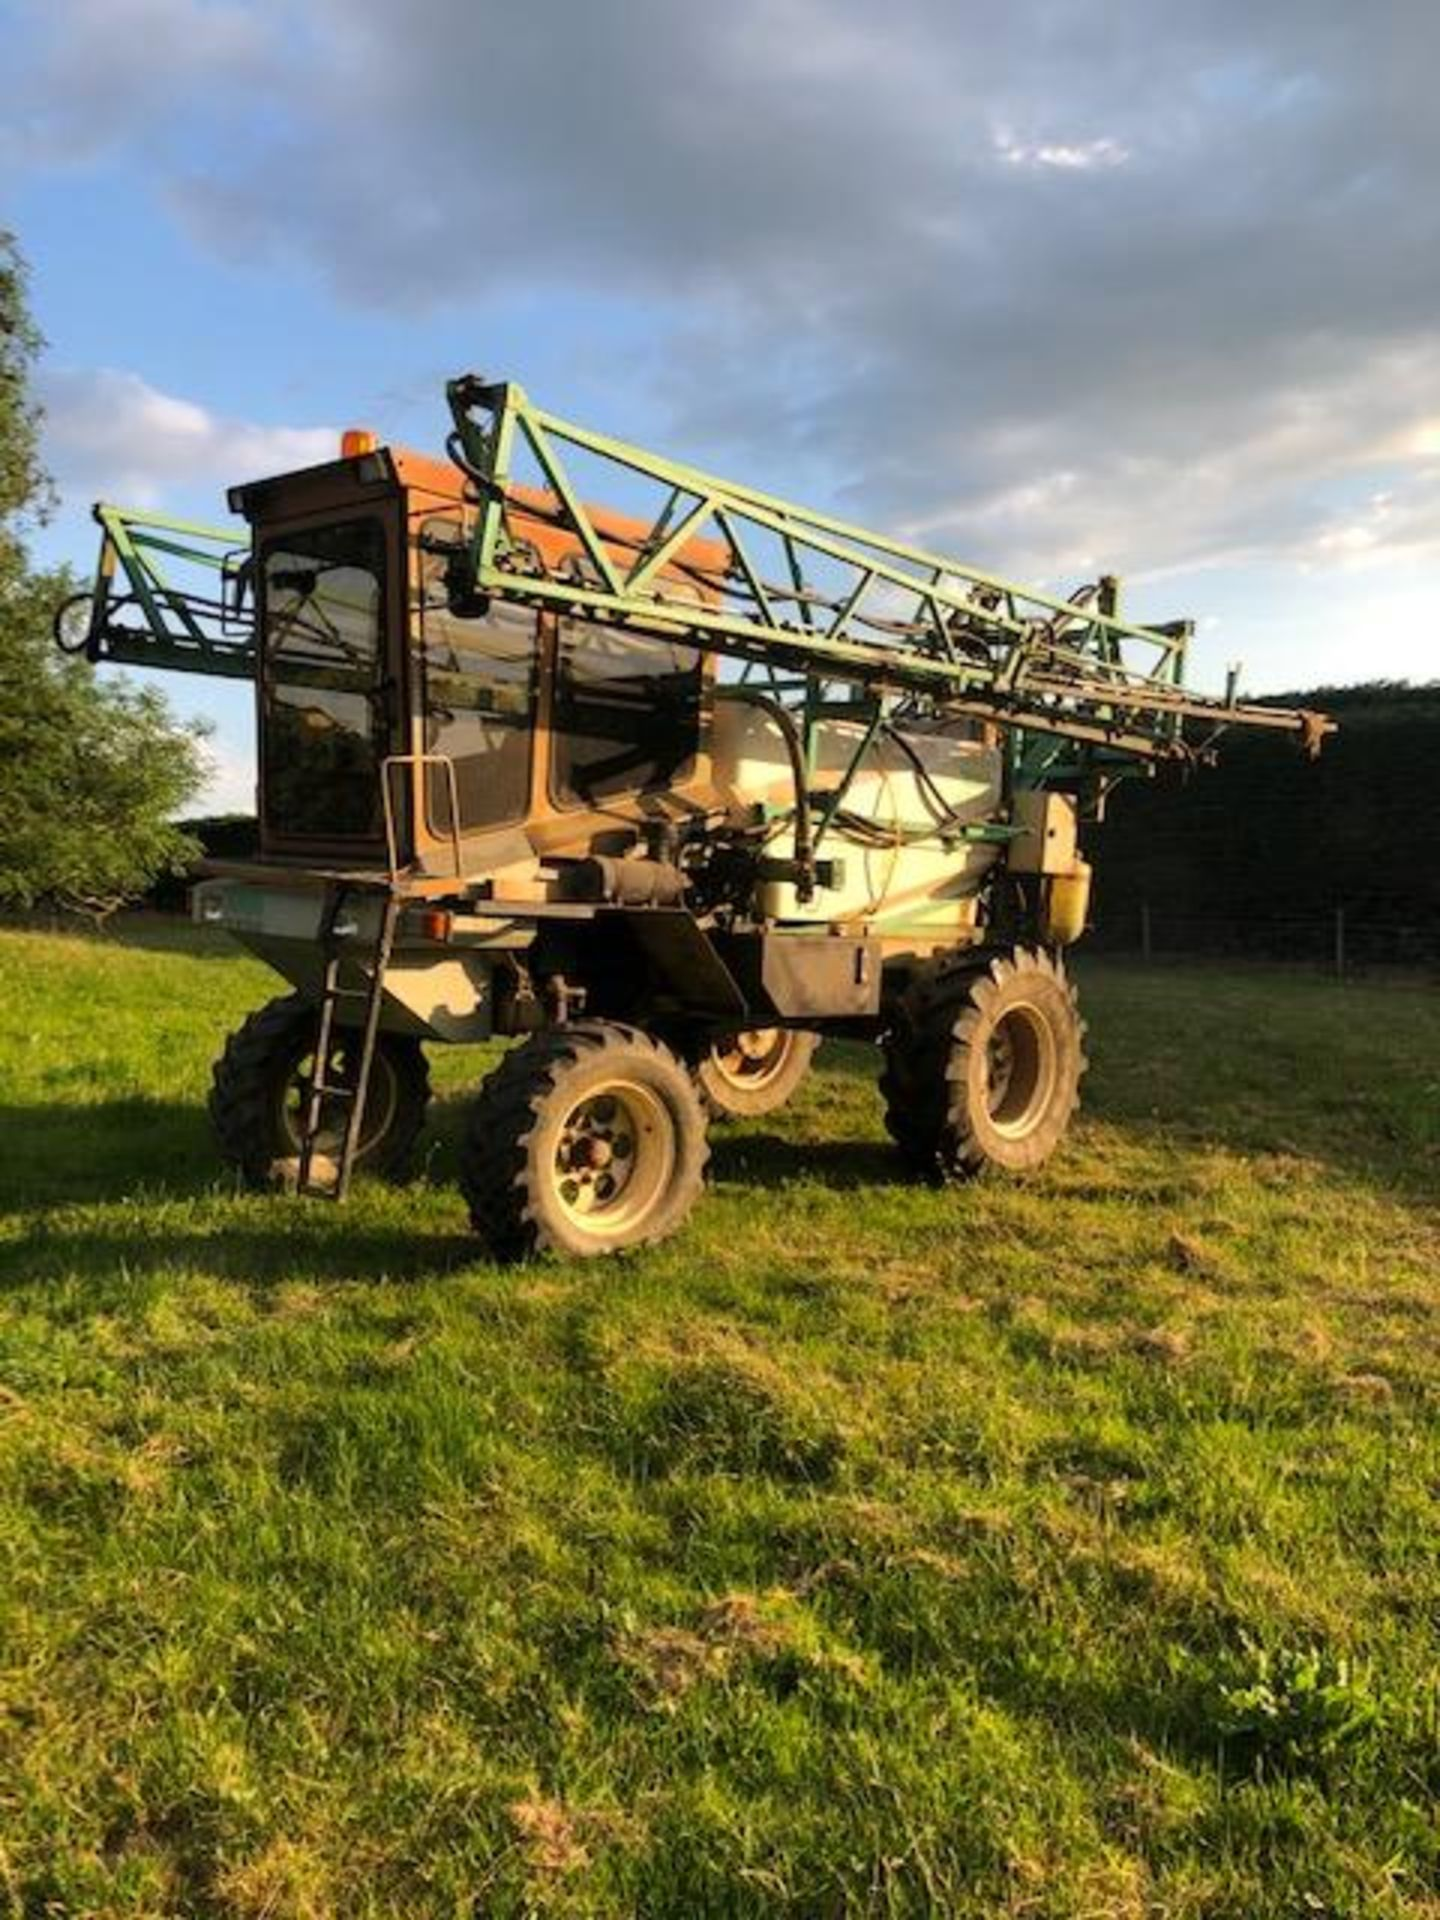 Lot 276 - SELF- PROPELLED CHAVIOT SPRAYER 24M BOOM, 1991, 3900 HOURS c/w SPARE WHEELS